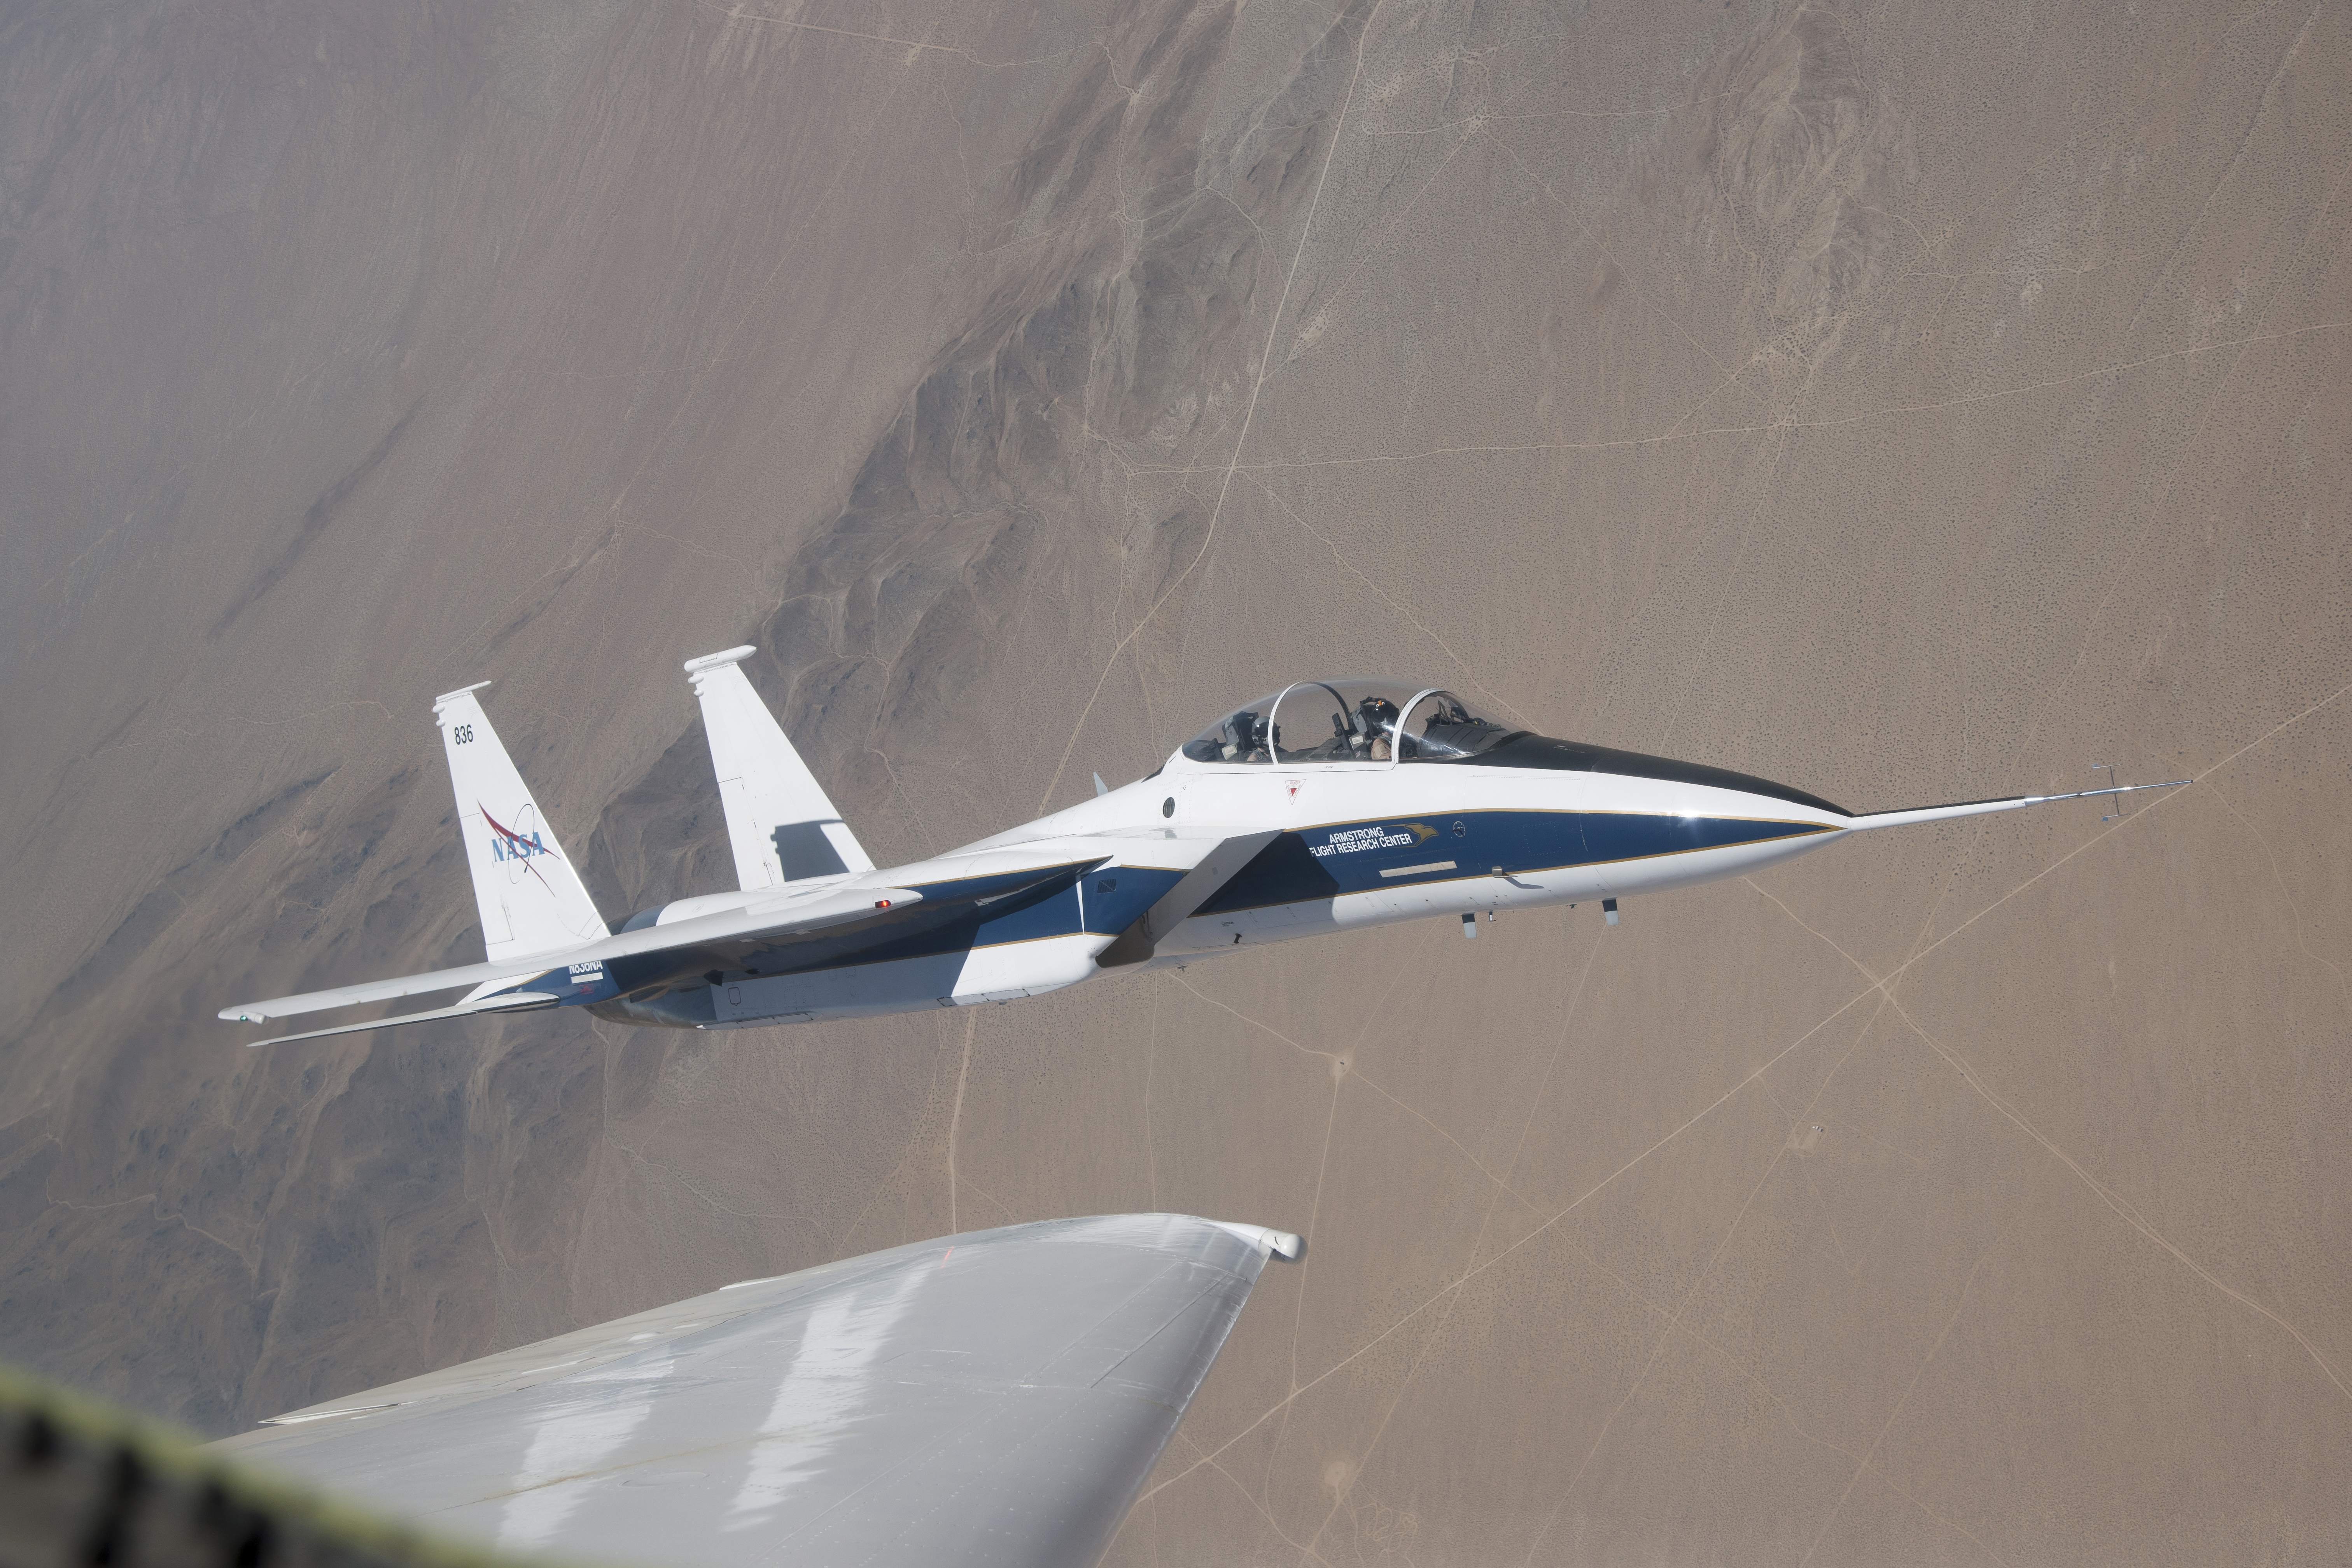 NASAu0027s F 15 Research Test Bed Will Expose The Swept Wing Laminar Flow Test  Article